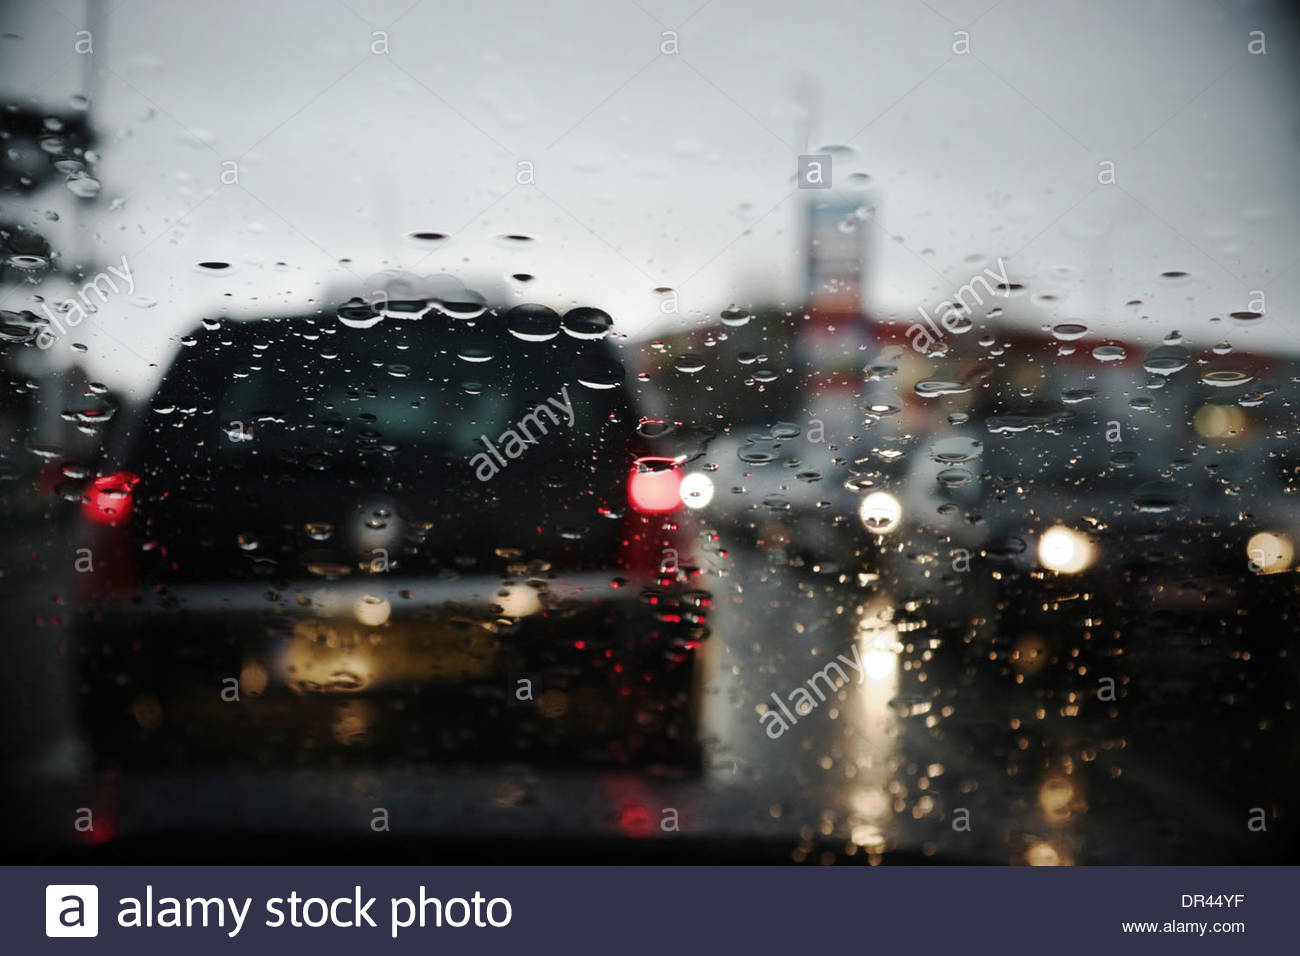 Rain droplets on the windscreen of a car stuck in a traffic jam. Bristol, UK. - Stock Image